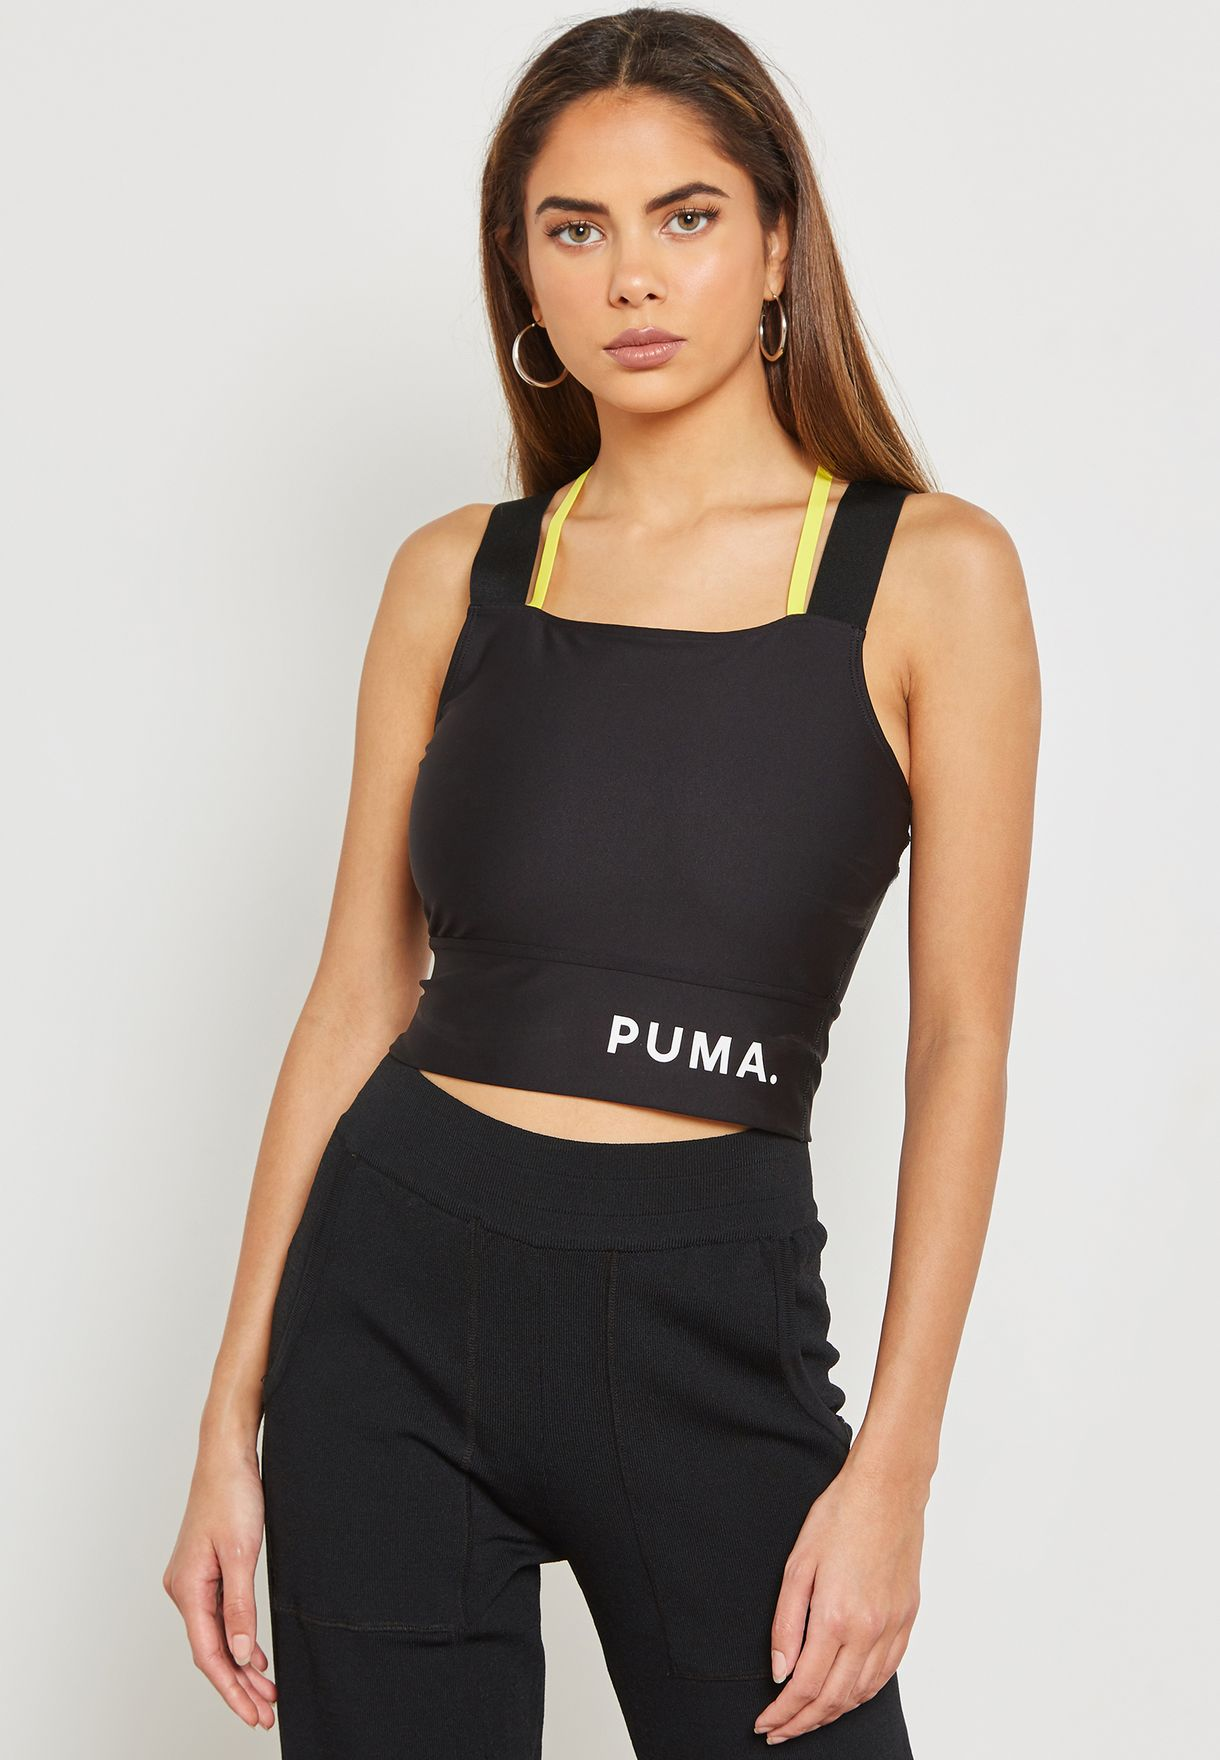 75a324f4fc0143 Shop PUMA black Chase Cropped Top 57803301 for Women in UAE ...